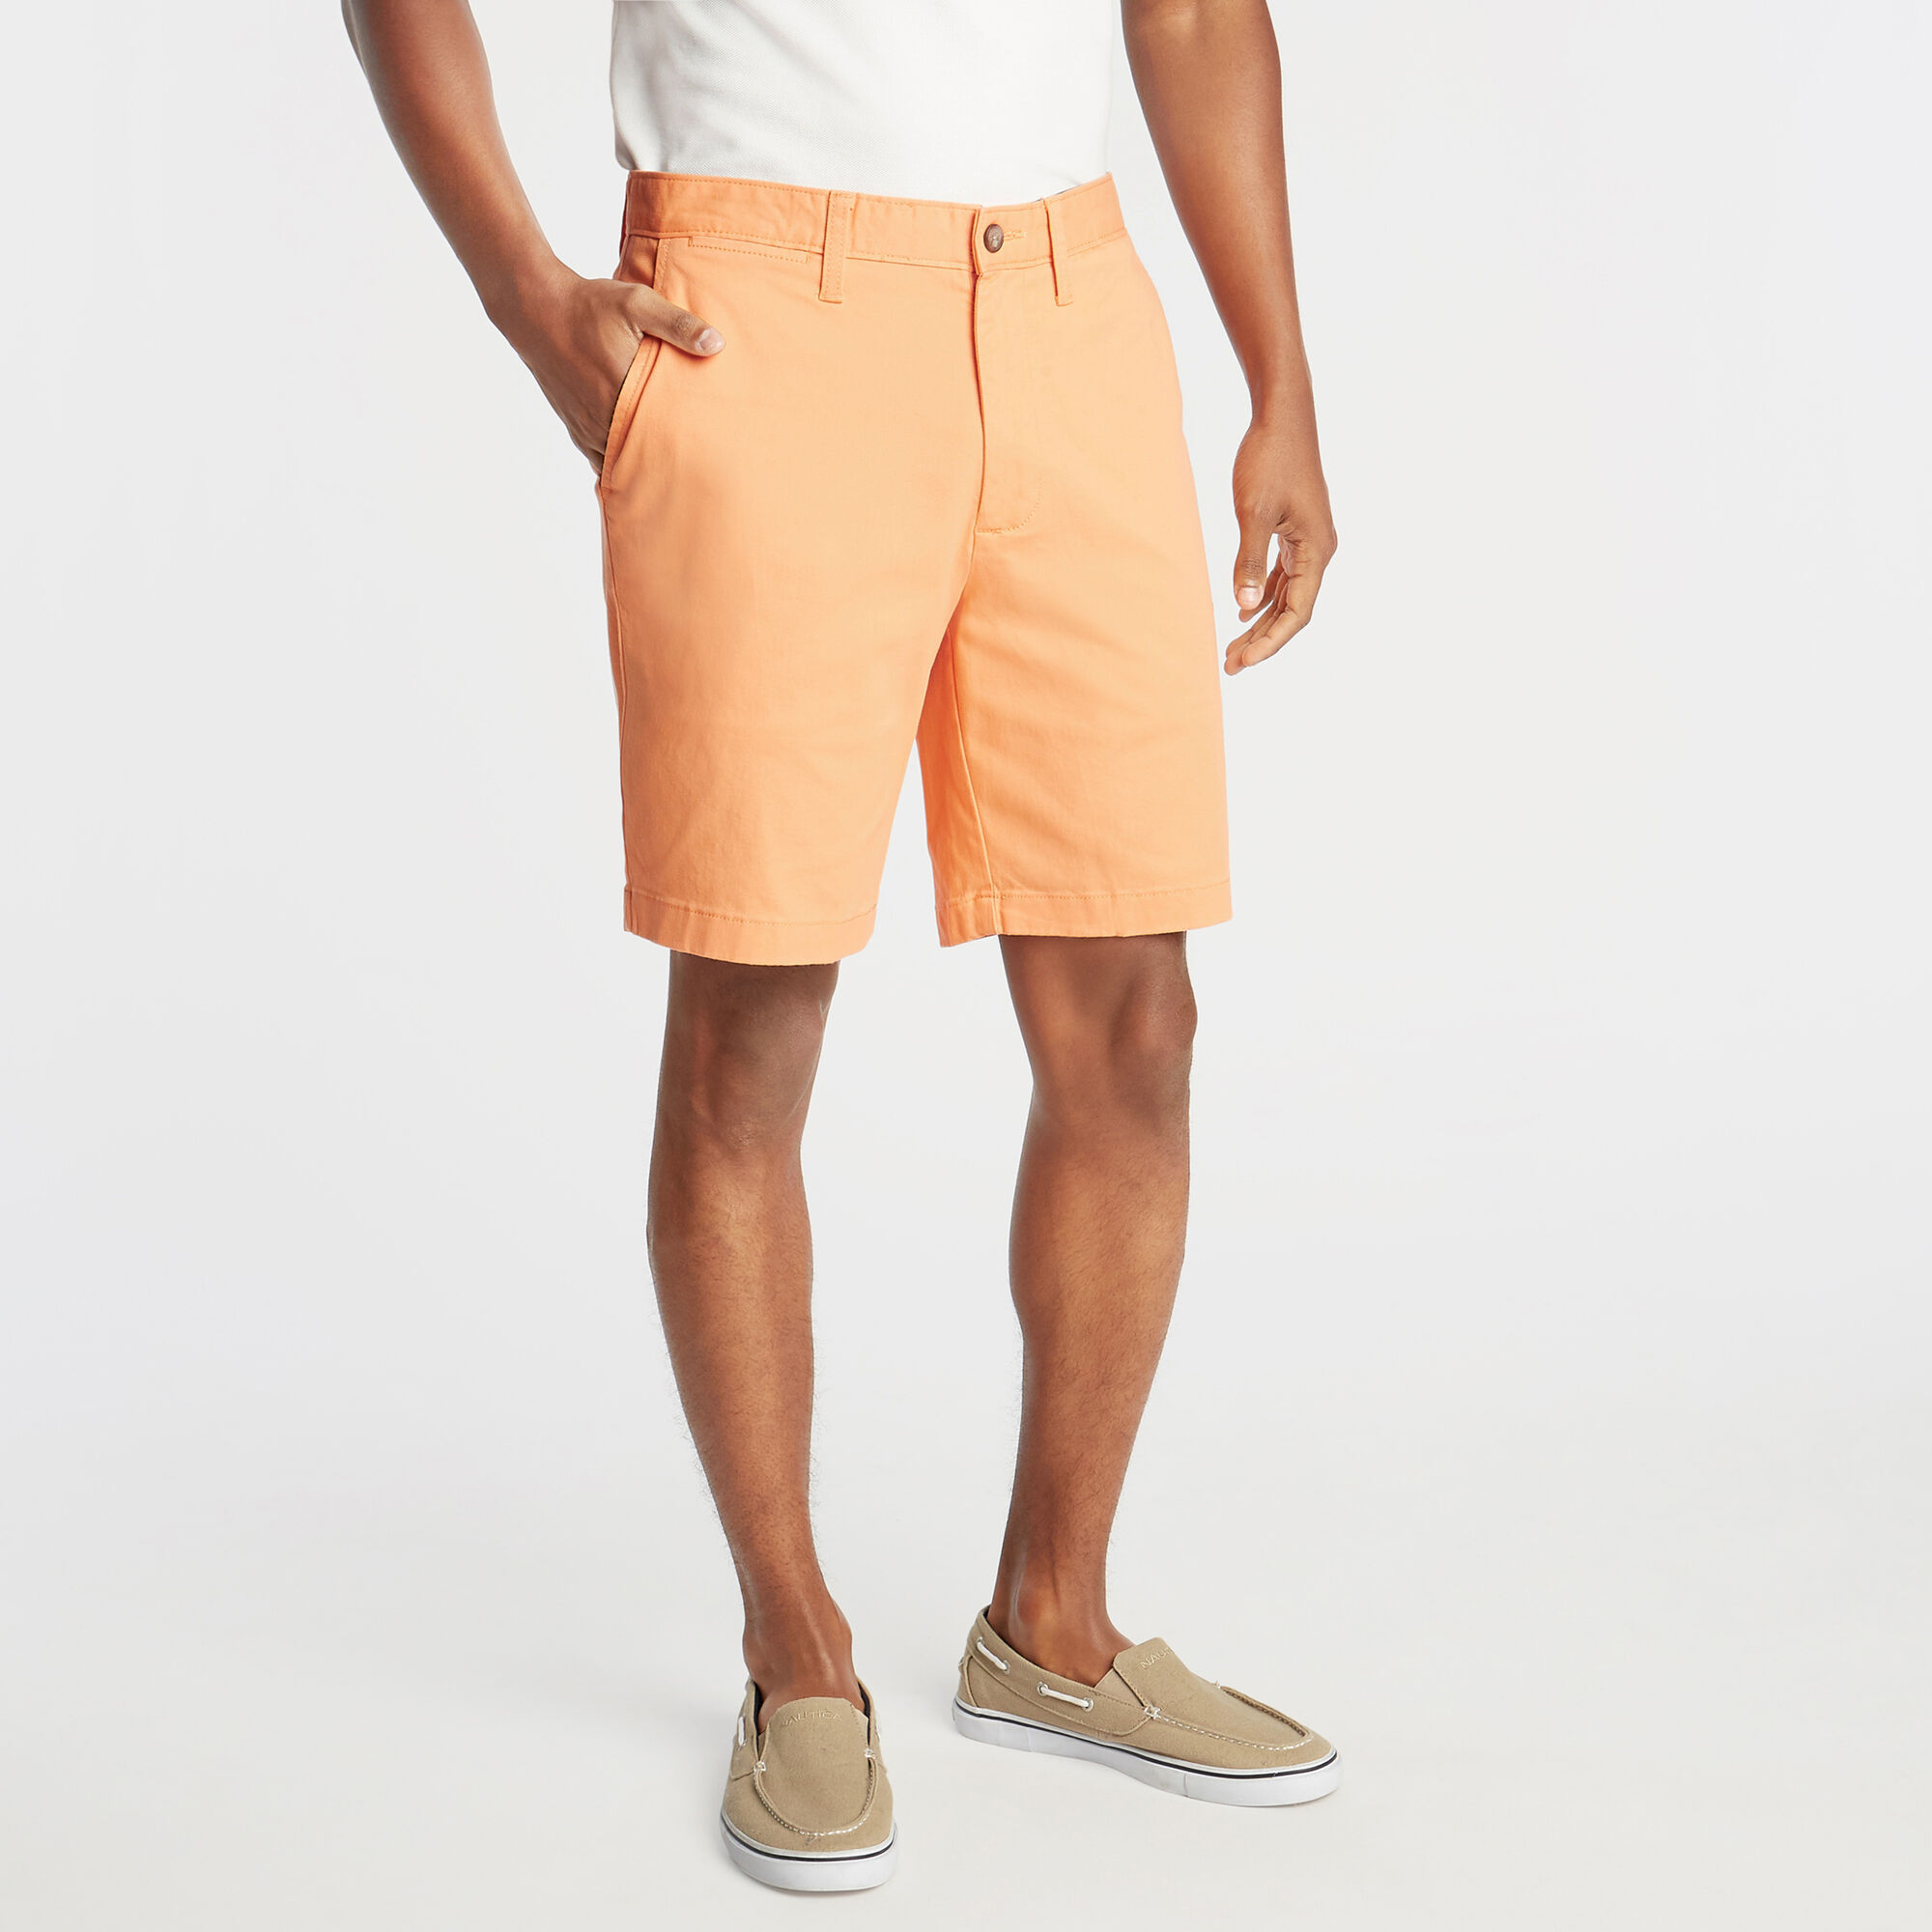 Nautica-Mens-8-5-034-Classic-Fit-Deck-Short-With-Stretch thumbnail 25